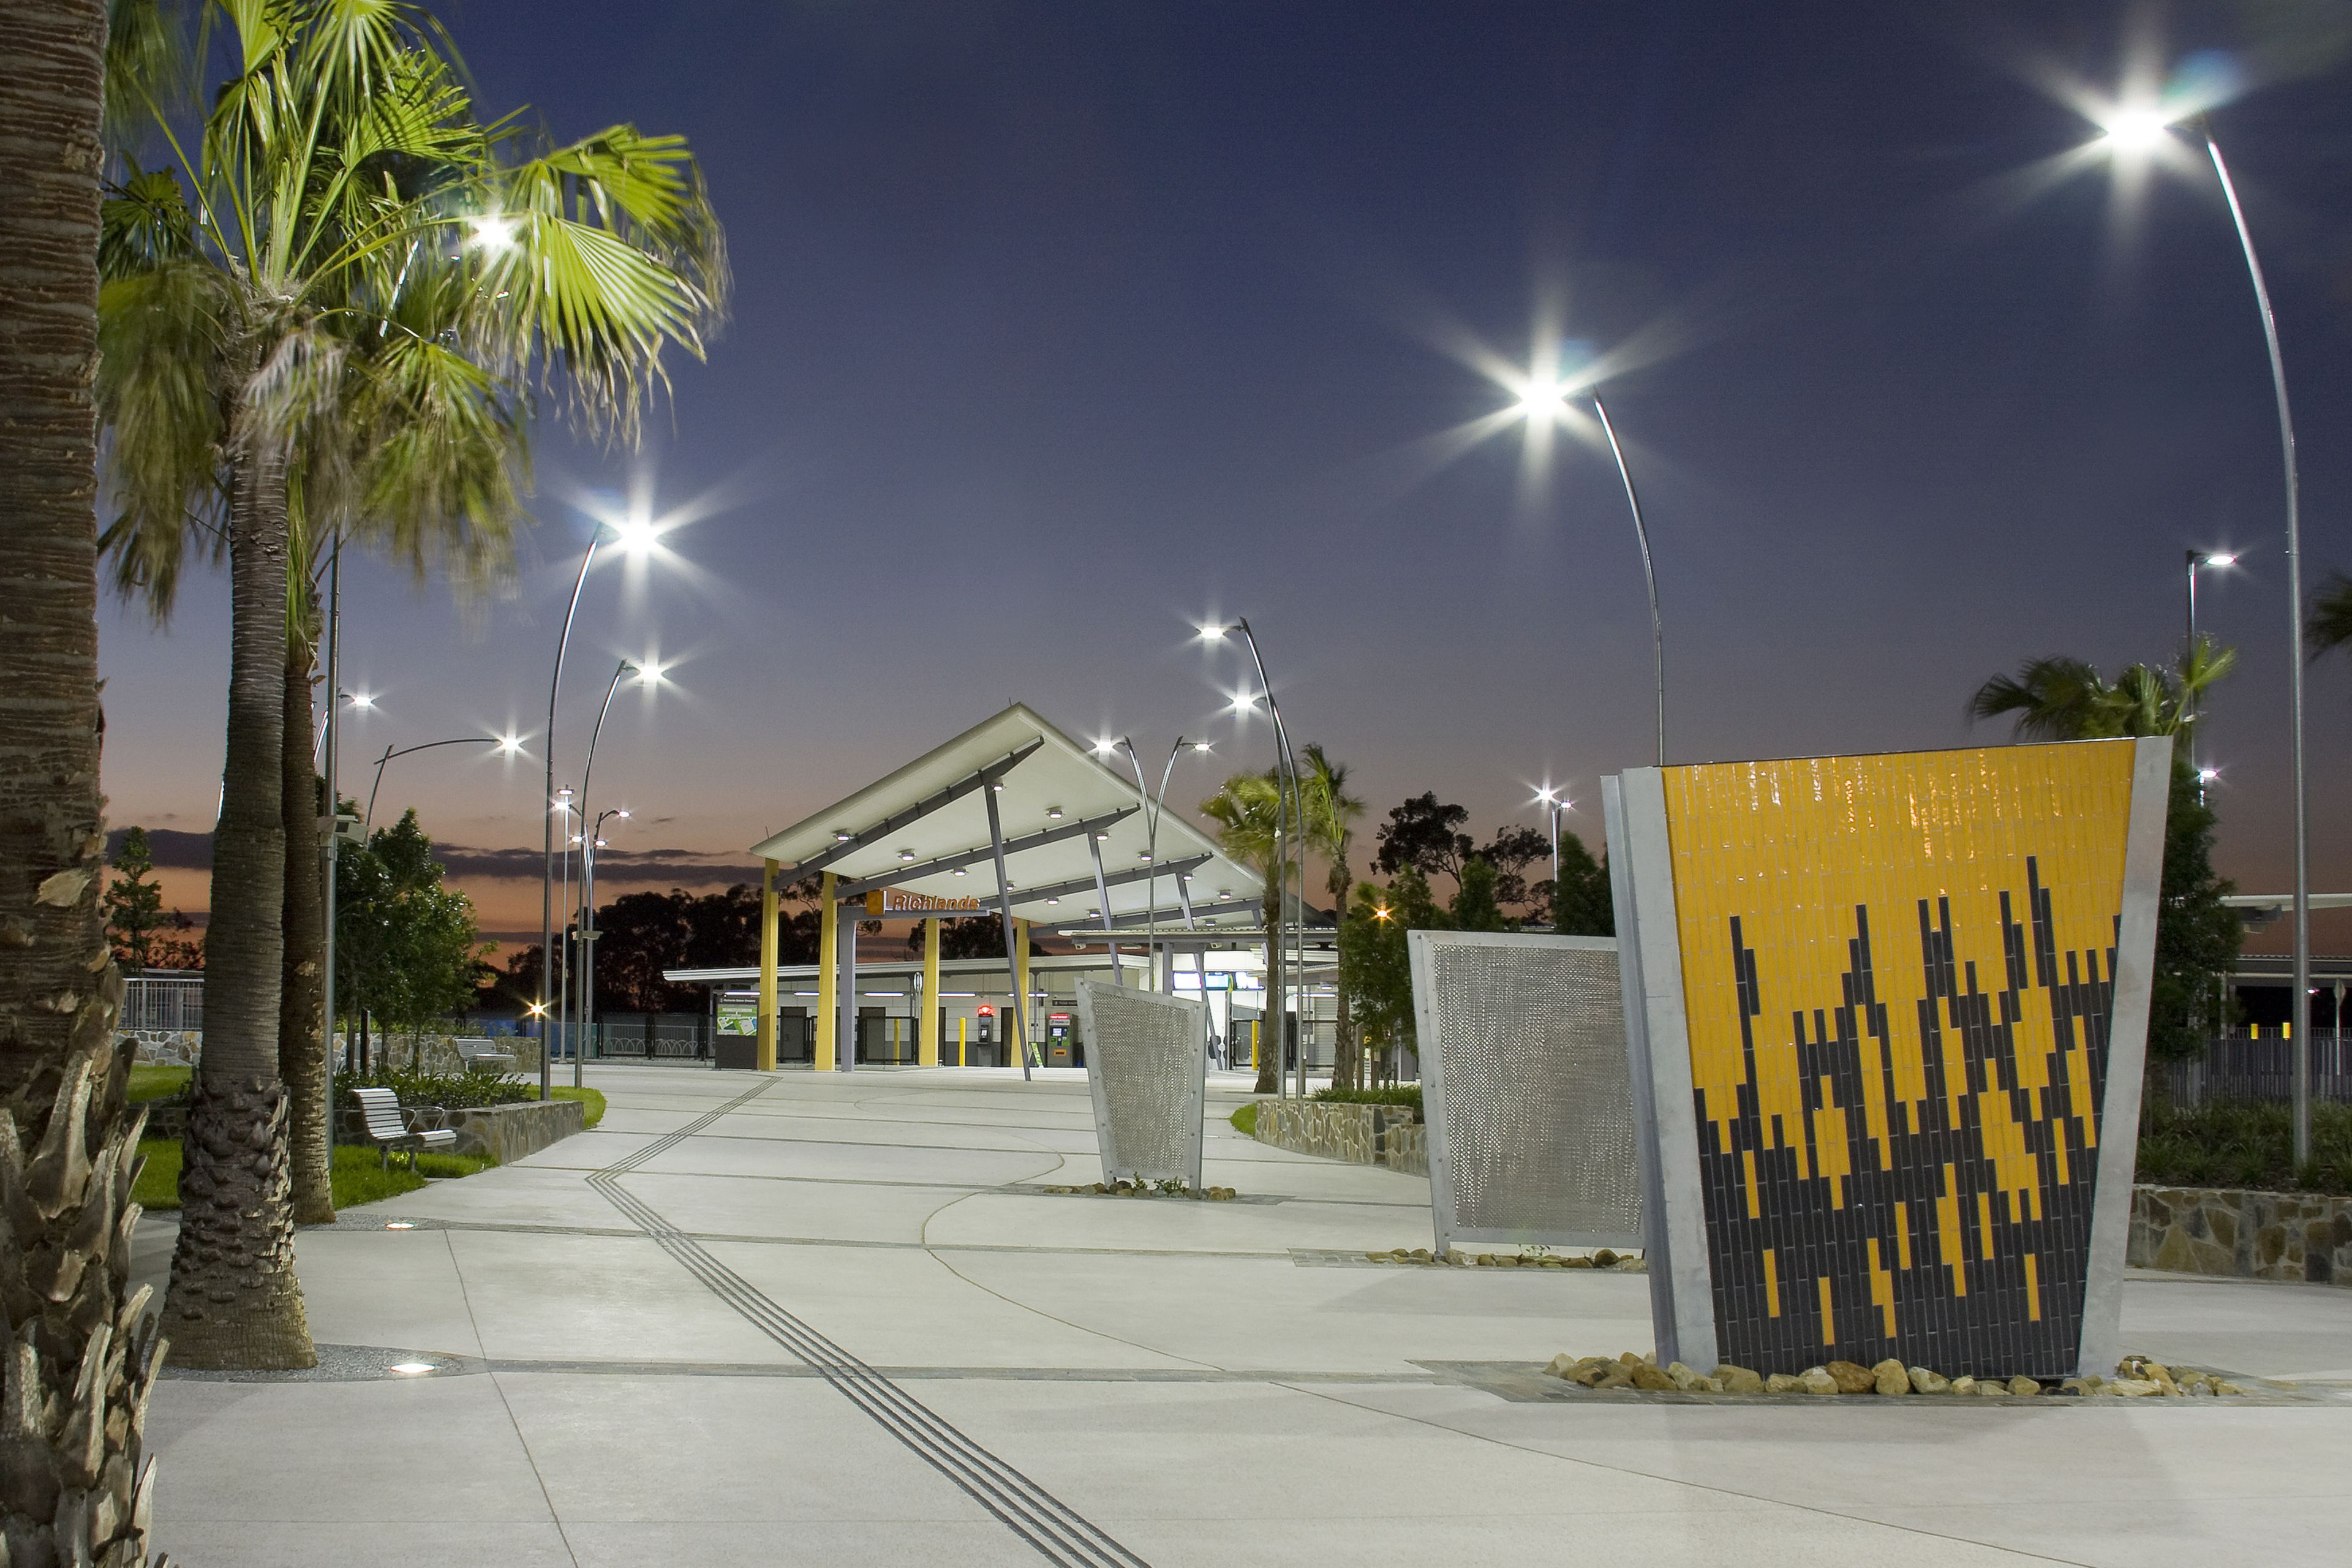 Smooth finished concrete sidewalk at transport station in Brisbane, Australia with guides for blind, palm trees and yellow tiled sculpture